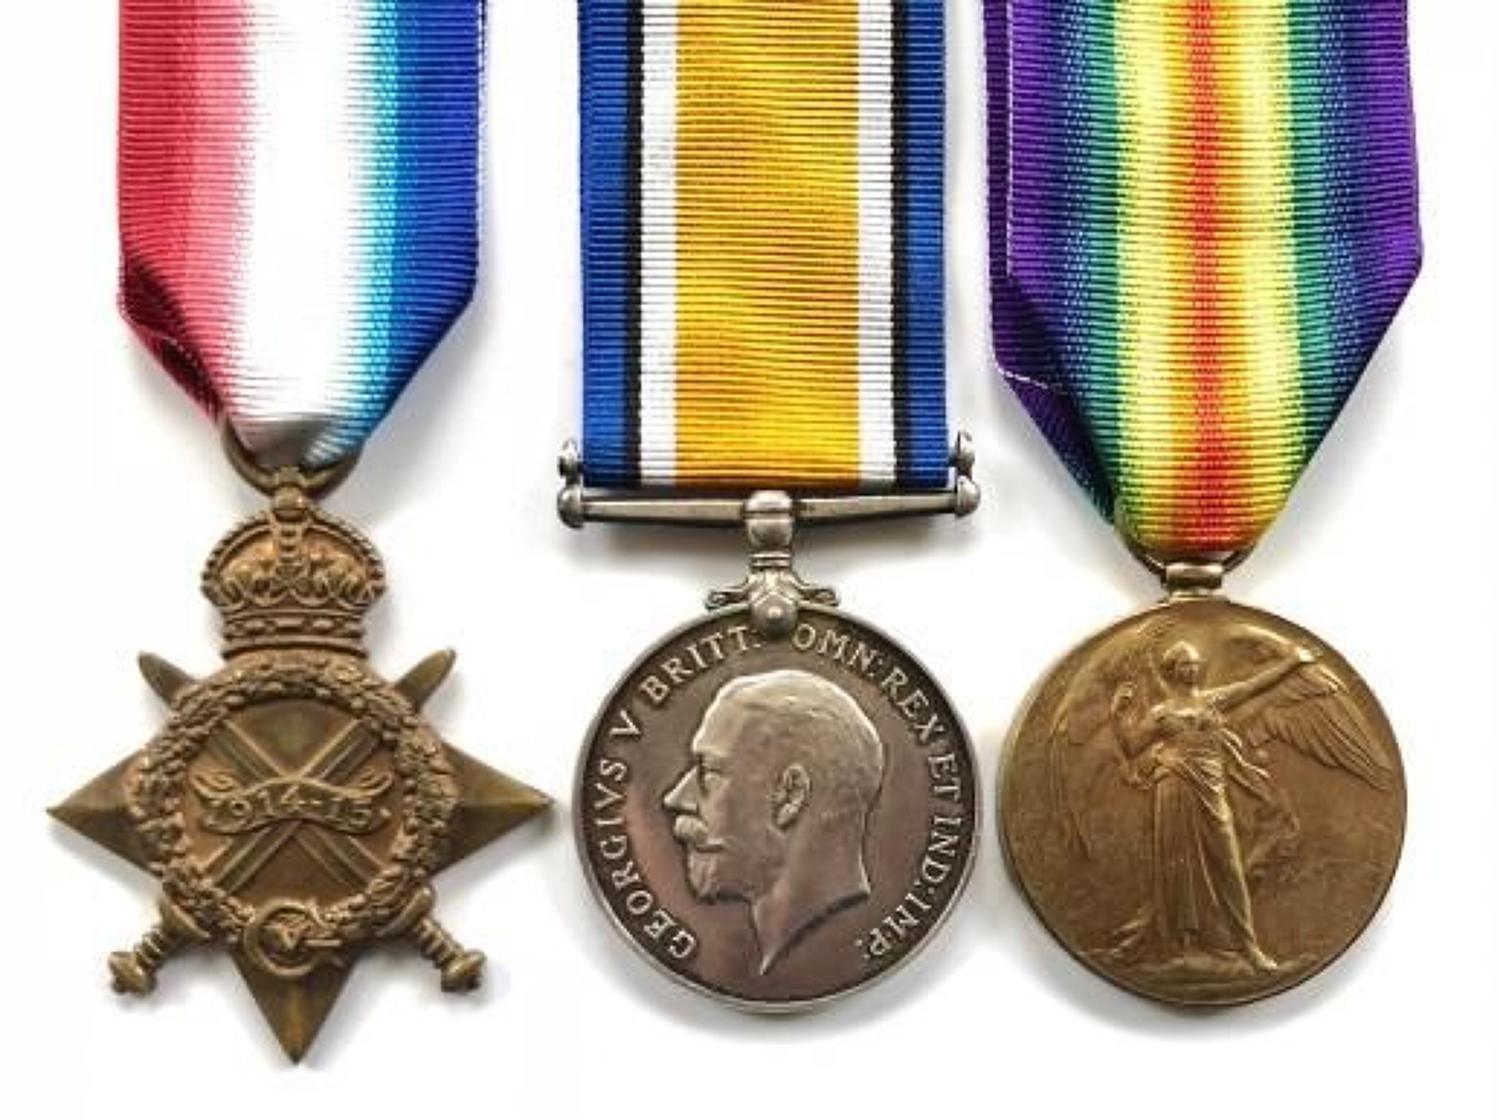 WW1 1st Bn Monmouthshire Regiment Officer's Group of Medals.